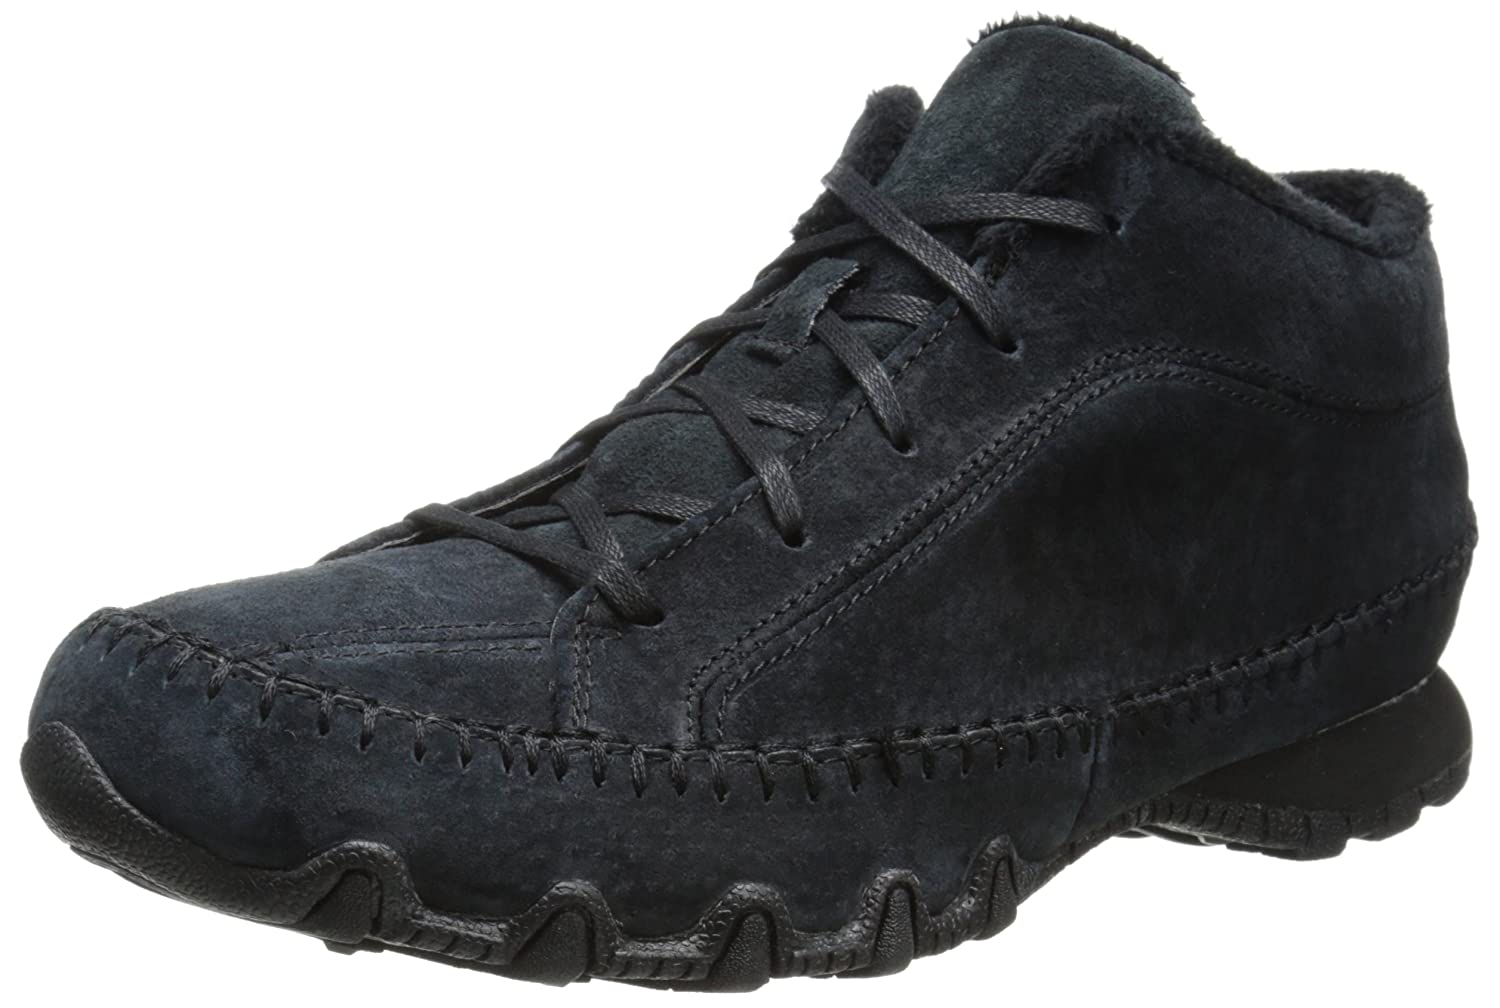 Skechers Bikers-Totem Pole Weit KnAtilde;para;chel Bootie  US 7.5 | UK 4.5 | EU 37.5|Black